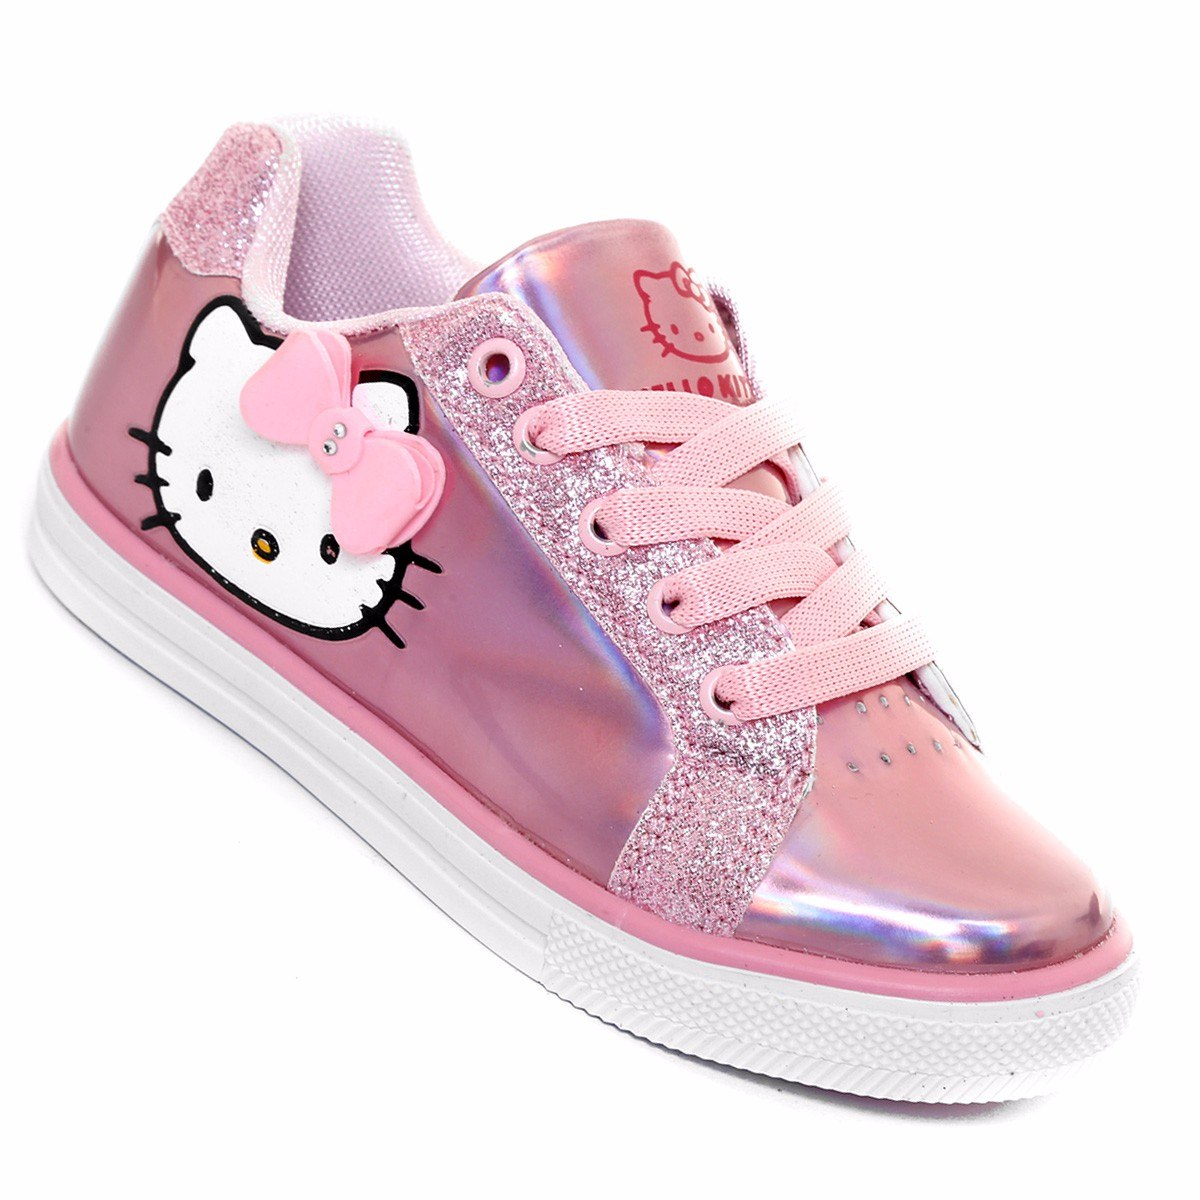 Hello Kitty Chaussures Blanches Pour Enfants AlFOWwO5we